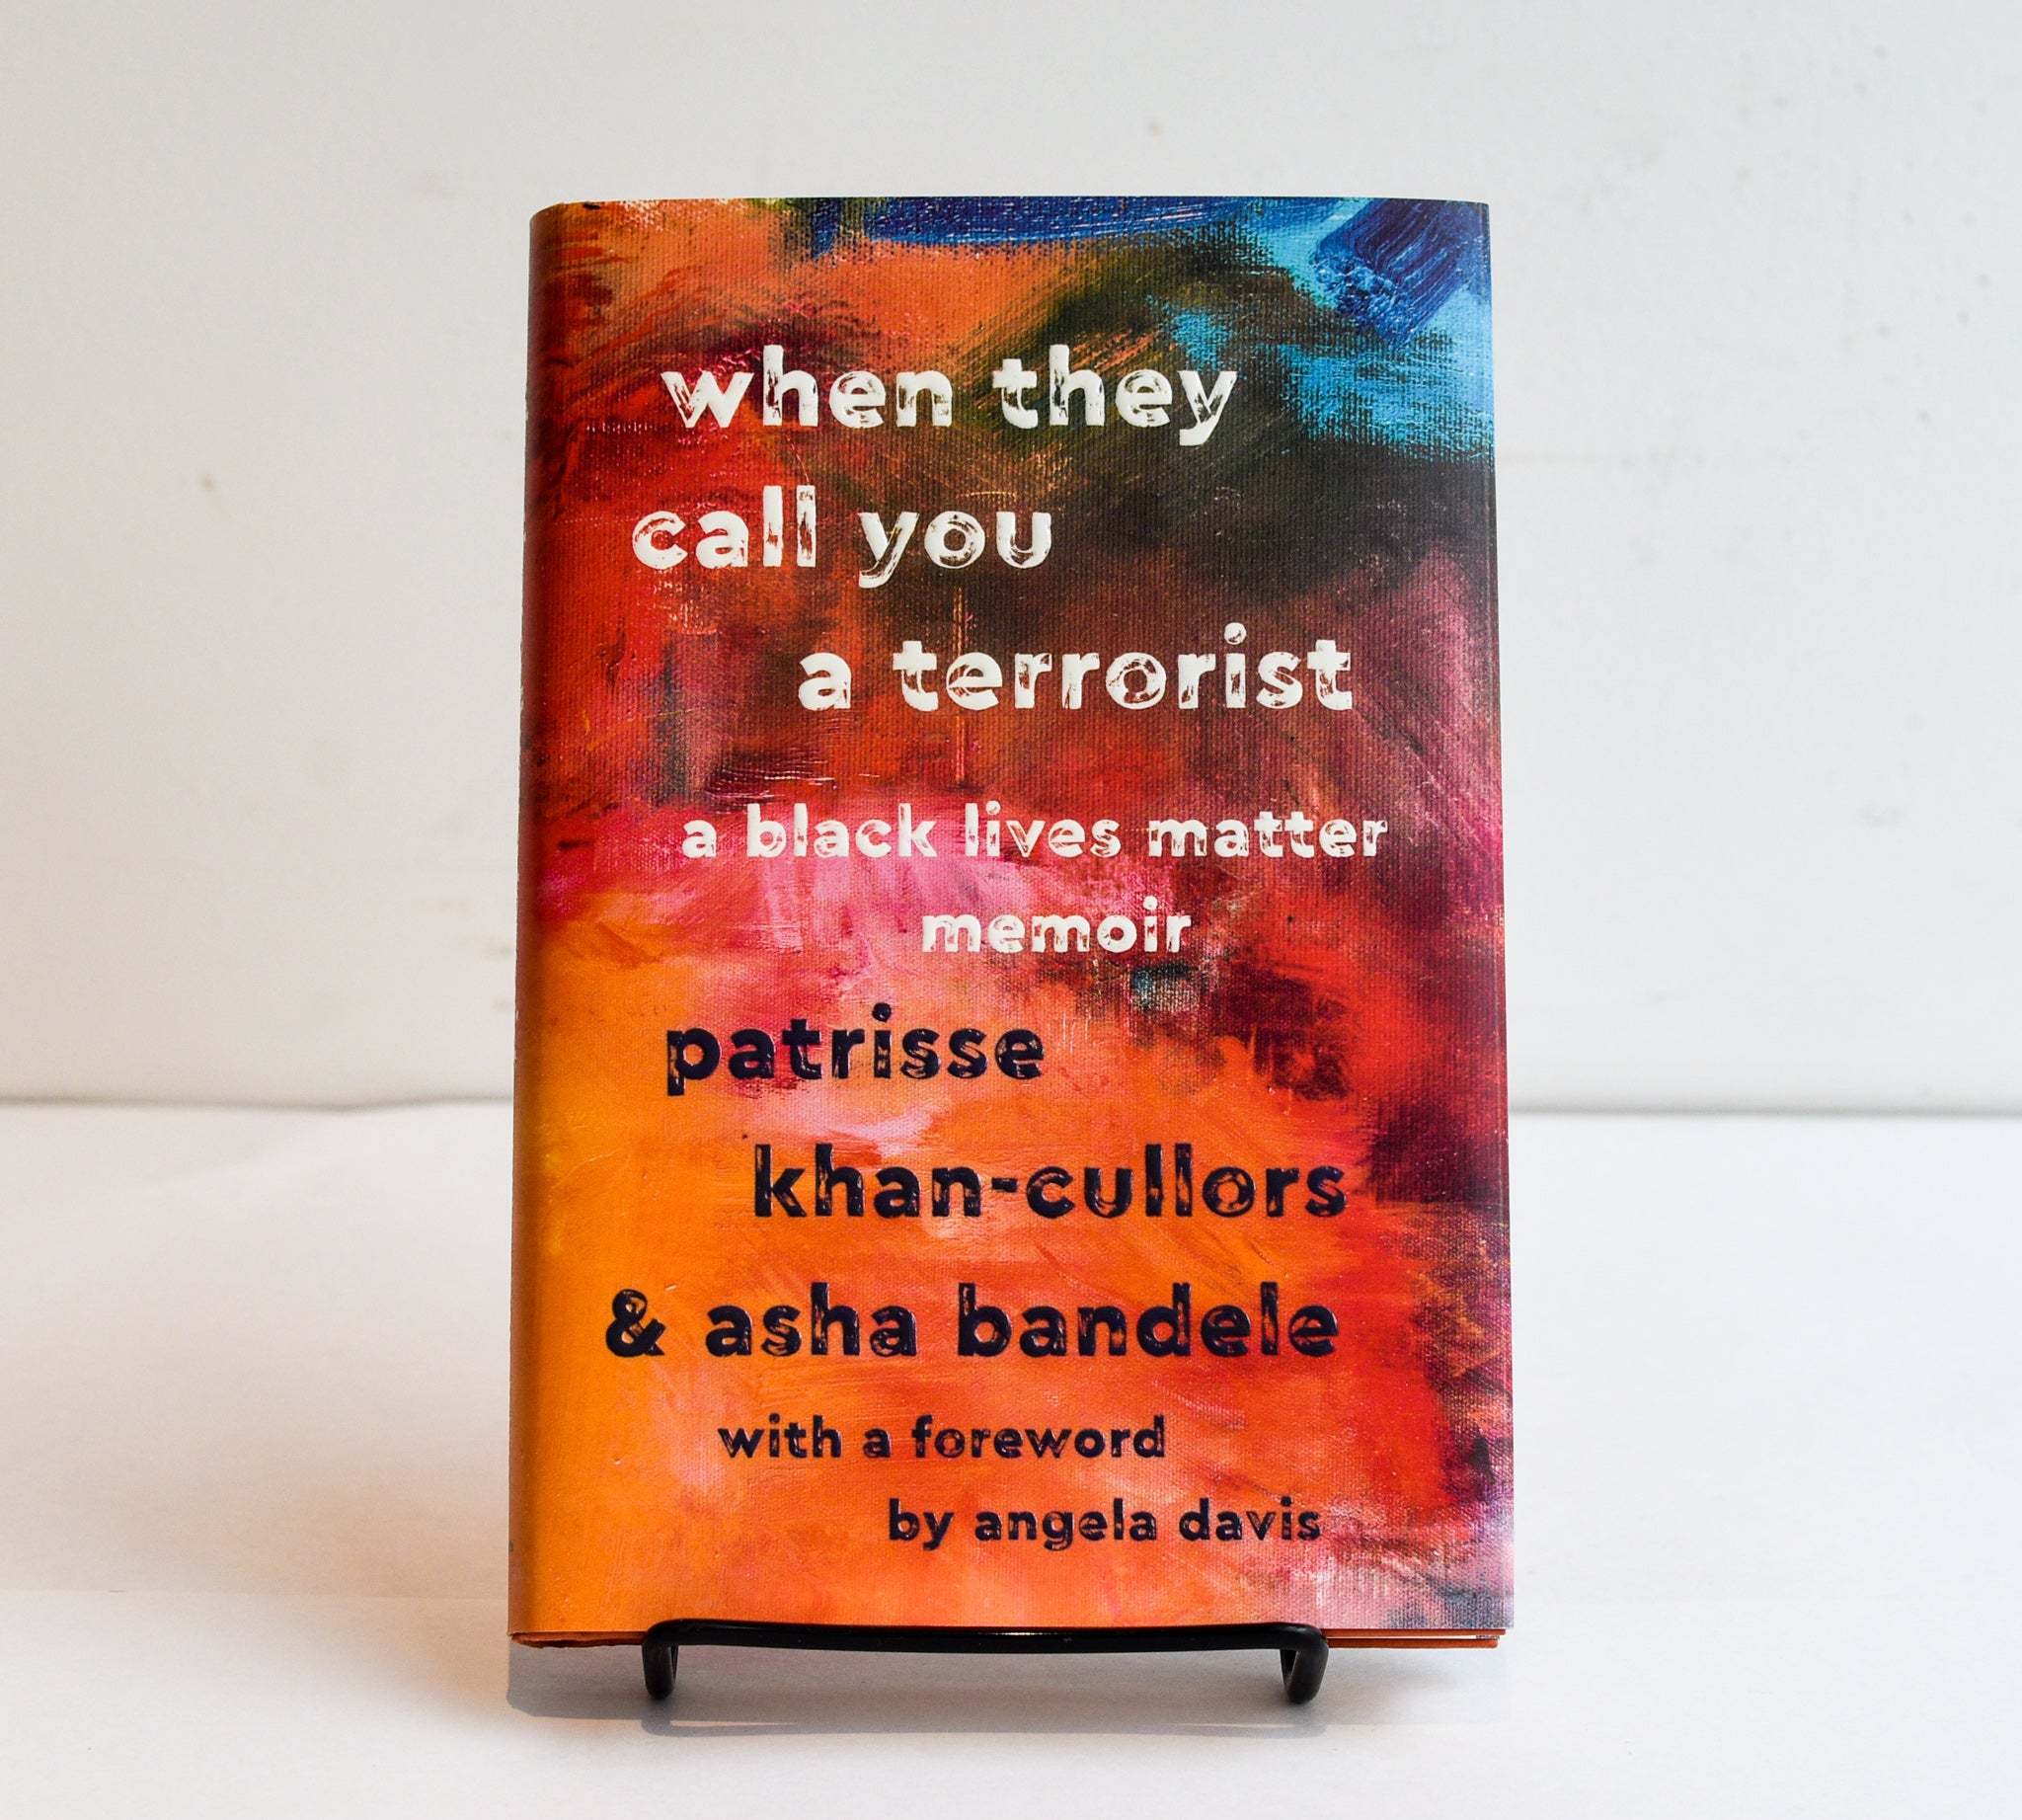 When They Call You a Terrorist by Patrisse Khan-Cullors & Asha Bandale